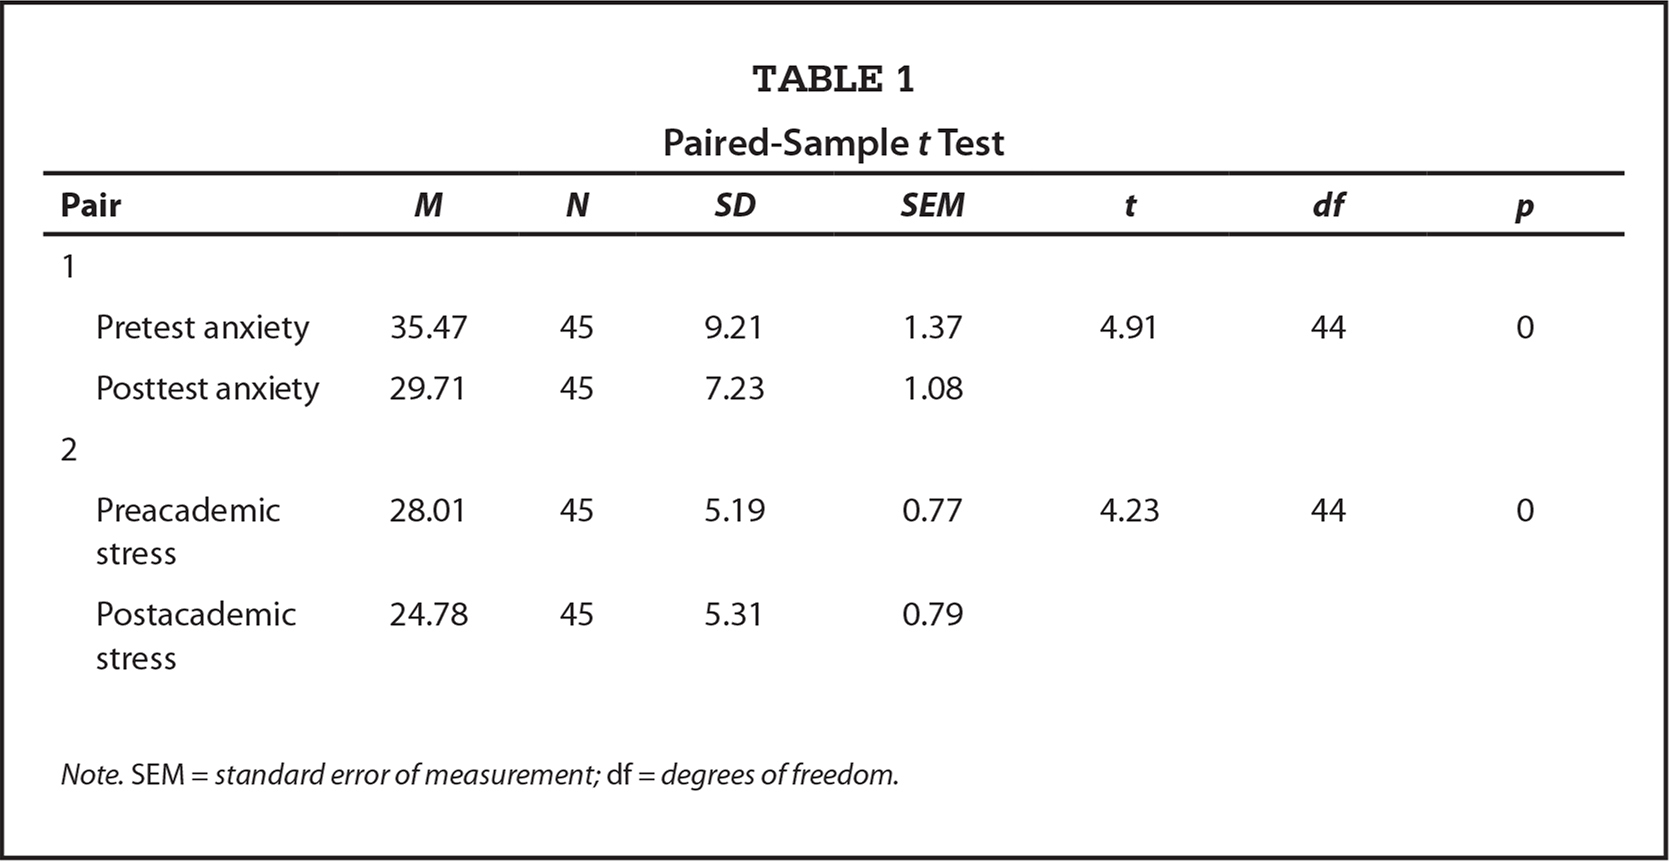 Paired-Sample t Test